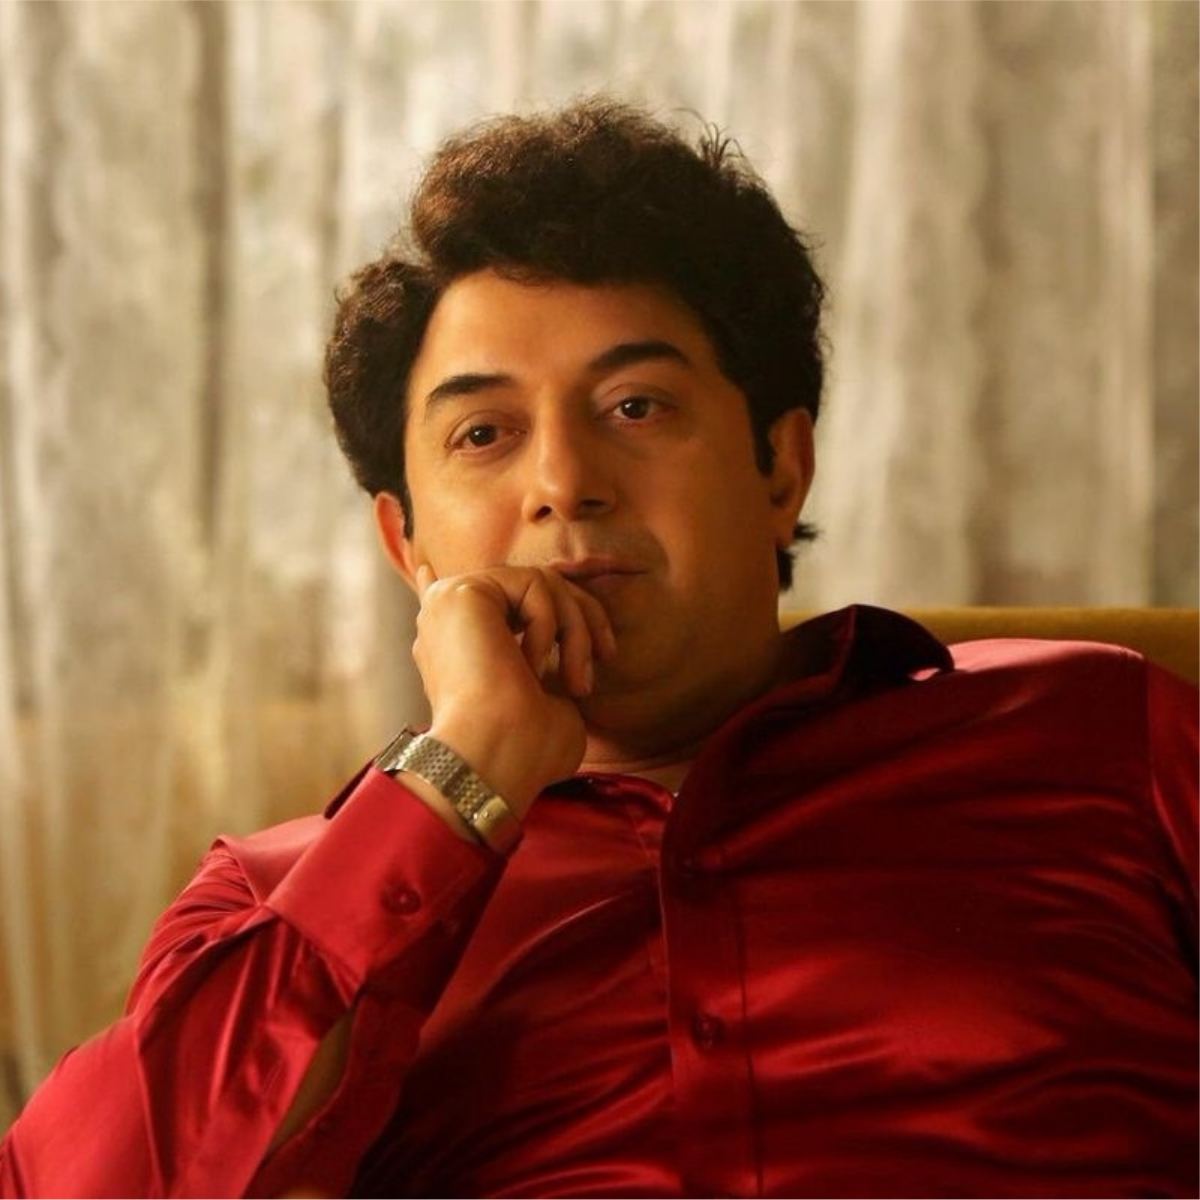 Arvind Swami's first look as MGR in Jayalalithaa biopic Thalaivi REVEALED